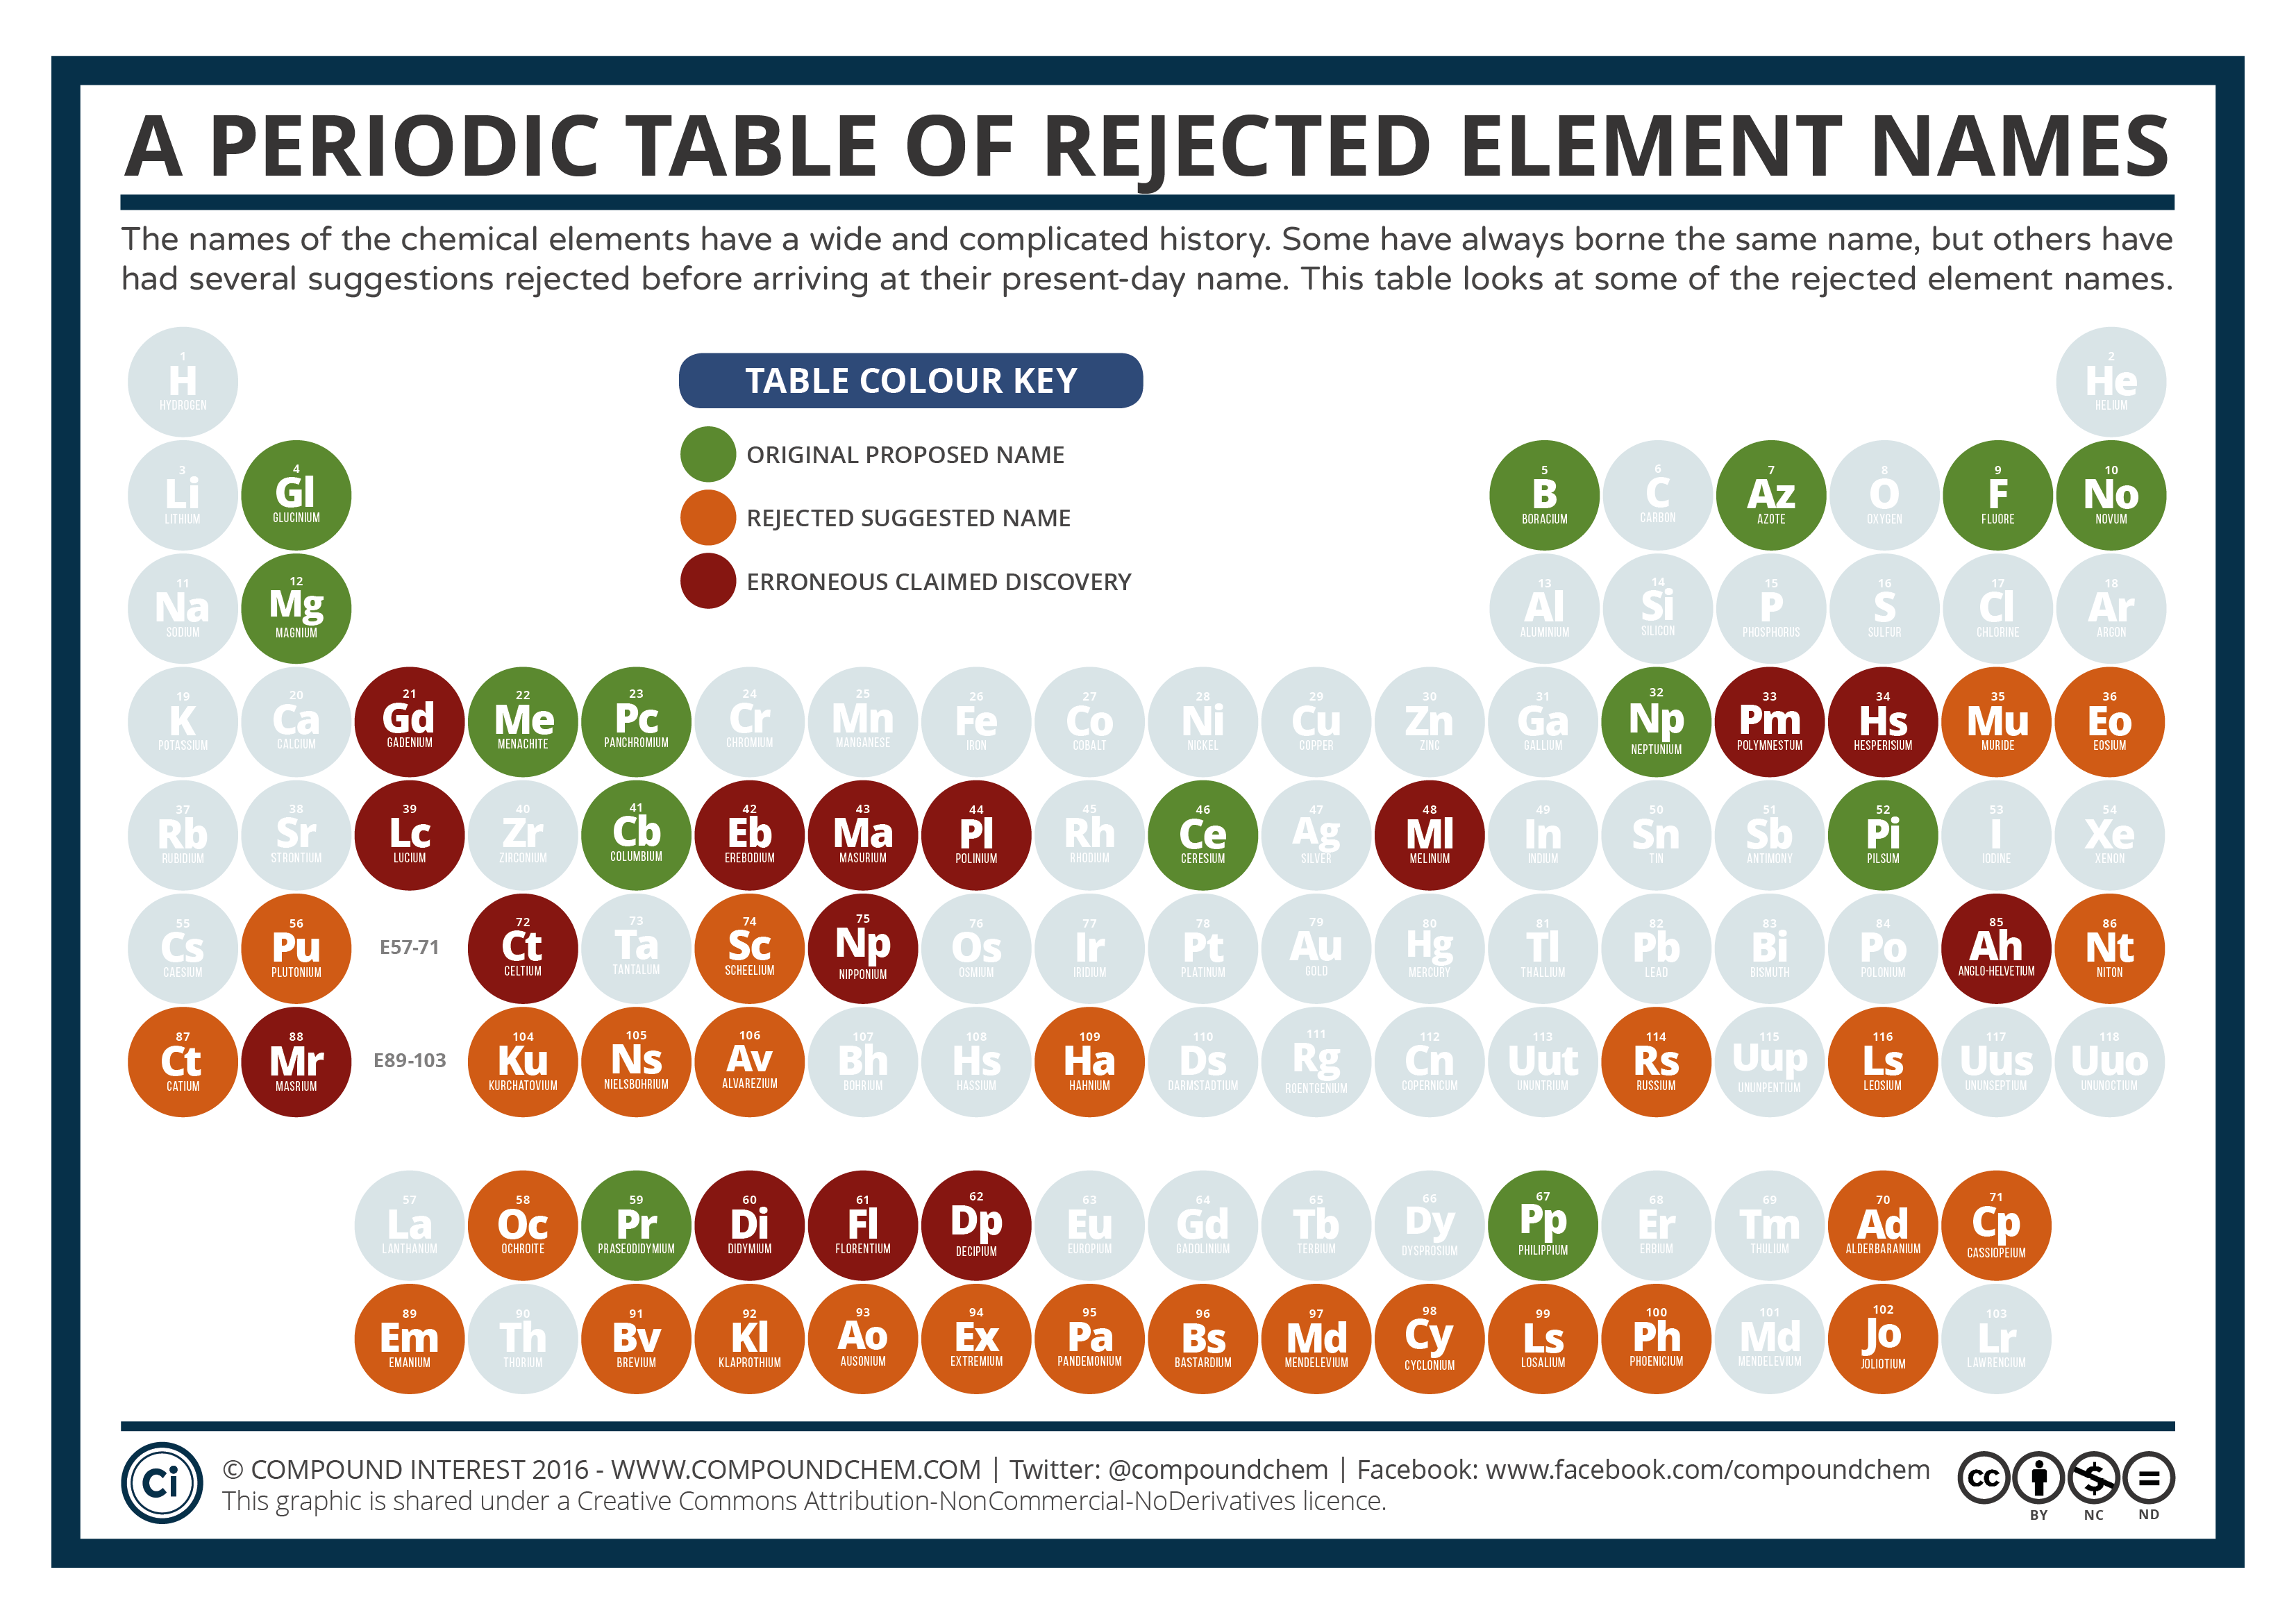 Compound interest a periodic table of rejected element names a periodic table of rejected element names urtaz Images